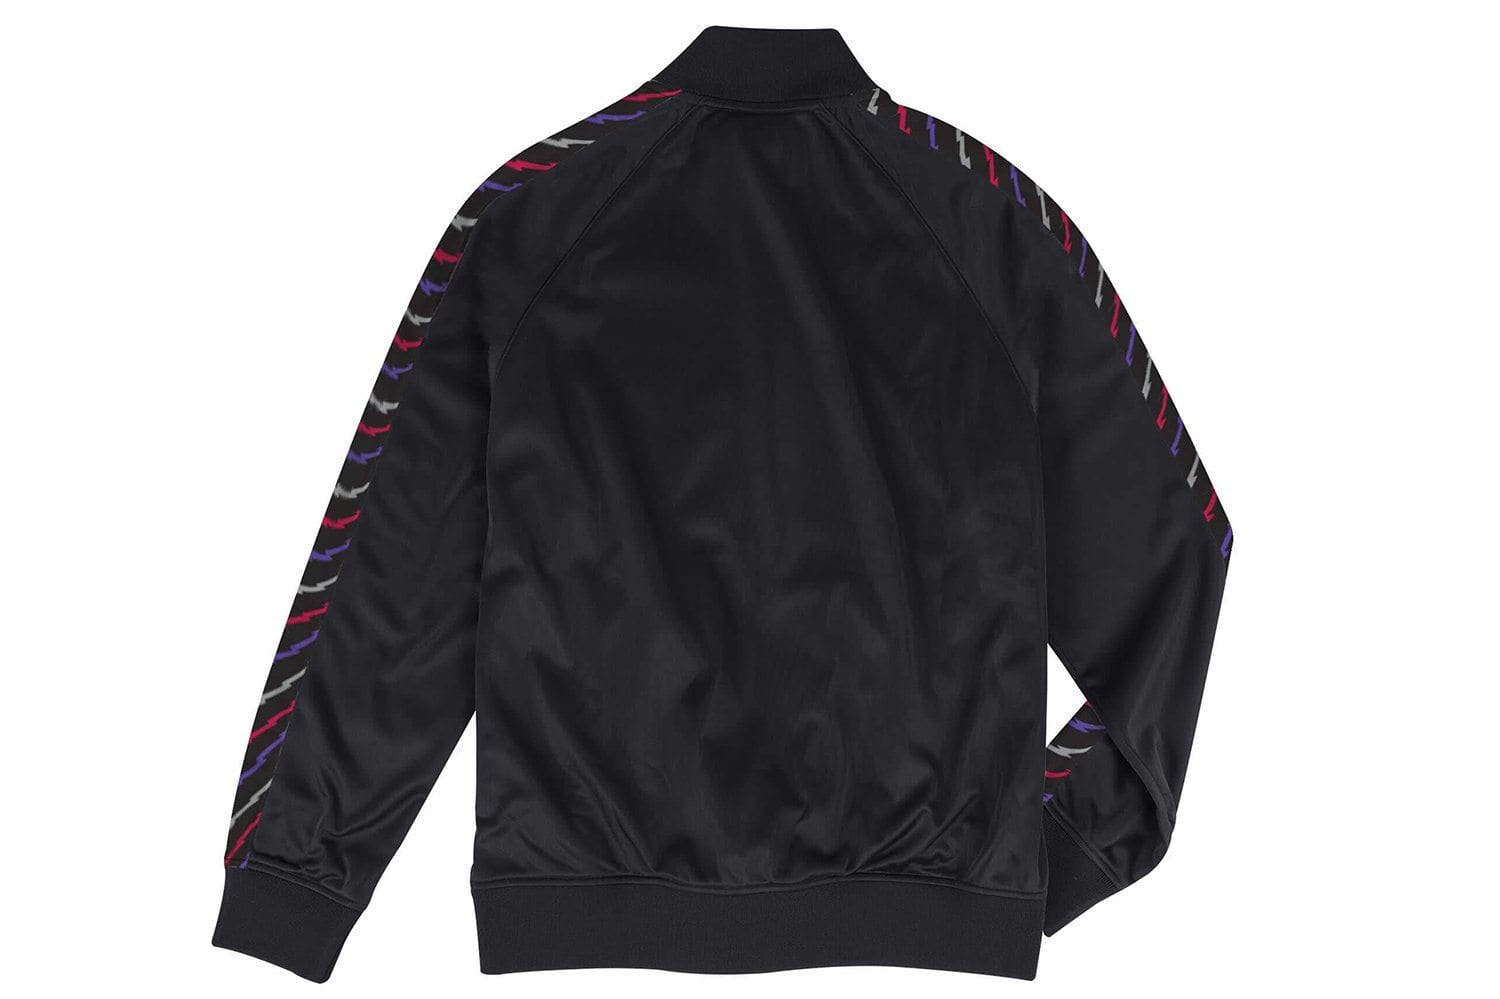 NBA RAPTORS TRACK JACKET - TRJKS19TRAK MENS SOFTGOODS MITCHELL & NESS